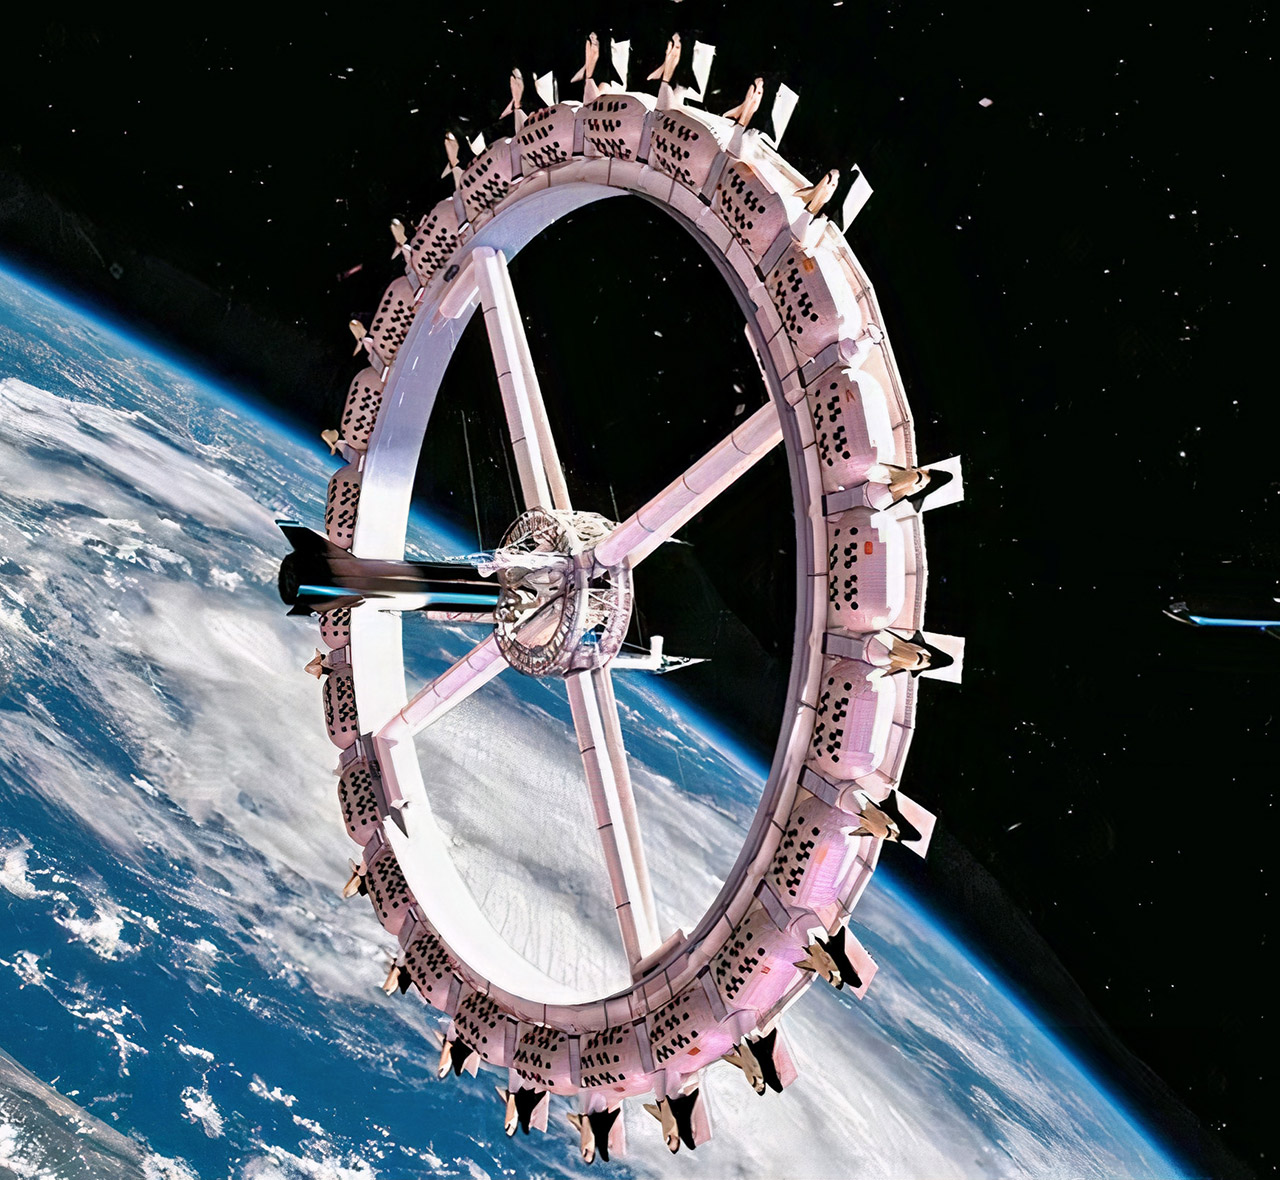 voyager-station-space-hotel.jpg